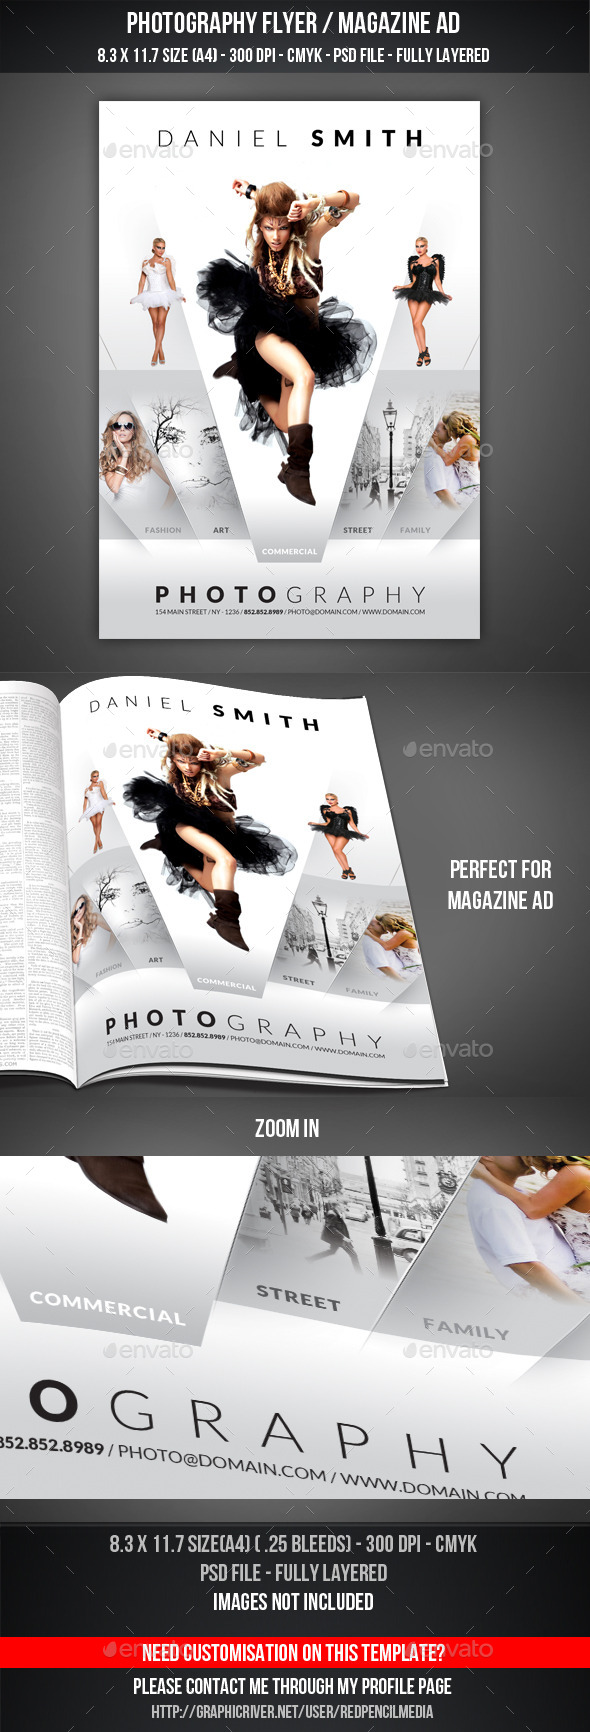 GraphicRiver Photography Flyer Magazine AD 11156574